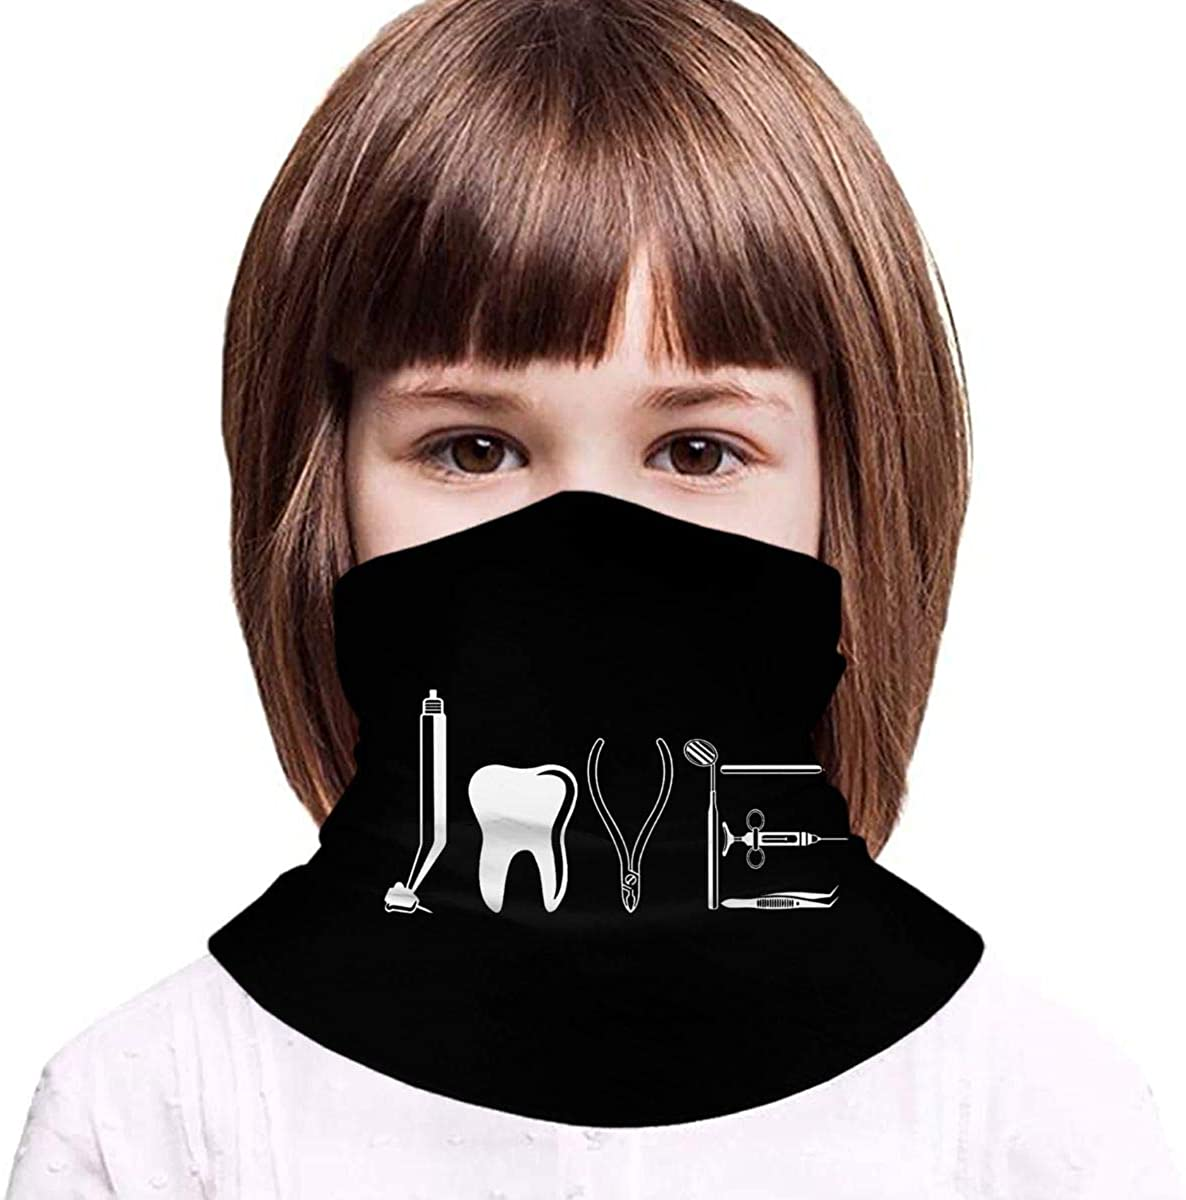 Love by Dental Equipments Dentist Health Care (2) Boy Girl Seamless Face Cover Neck Gaiter Headband Teenagers Scarf Outdoors/Festivals/Sports - Gifts for Kids Black